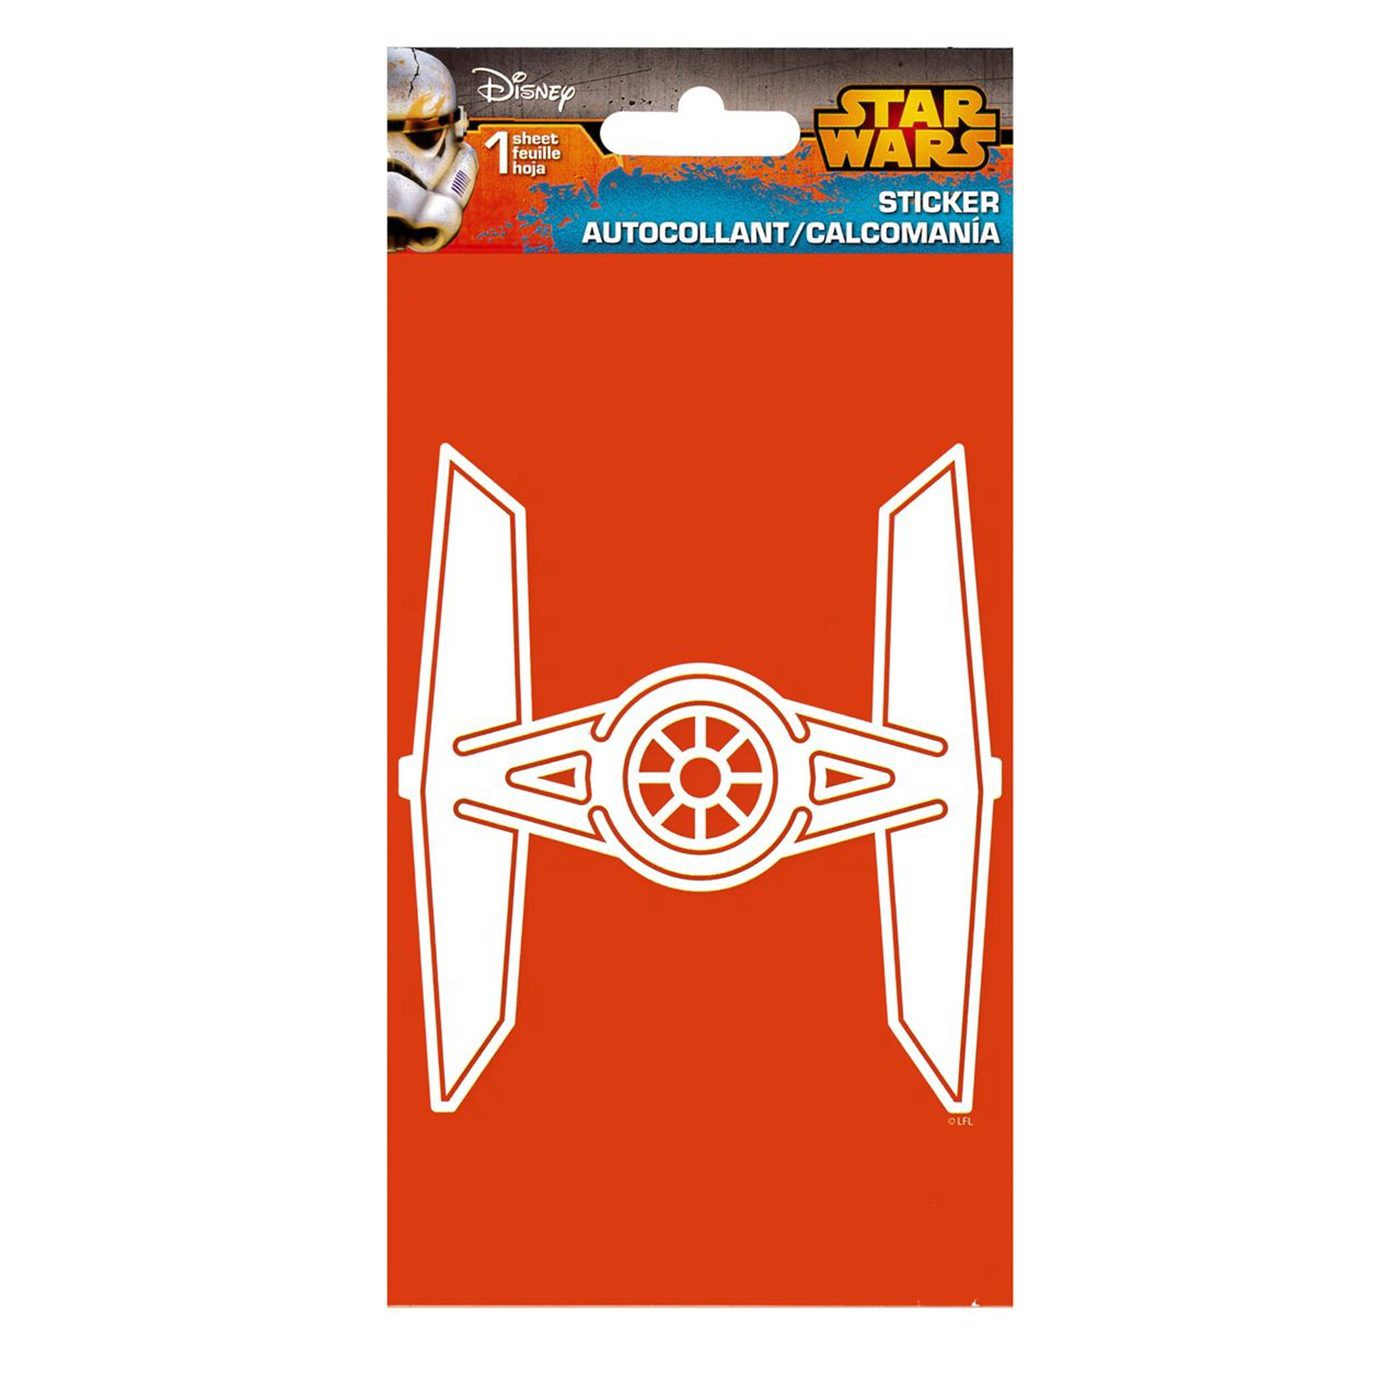 Star Wars TIE Fighter Sticker